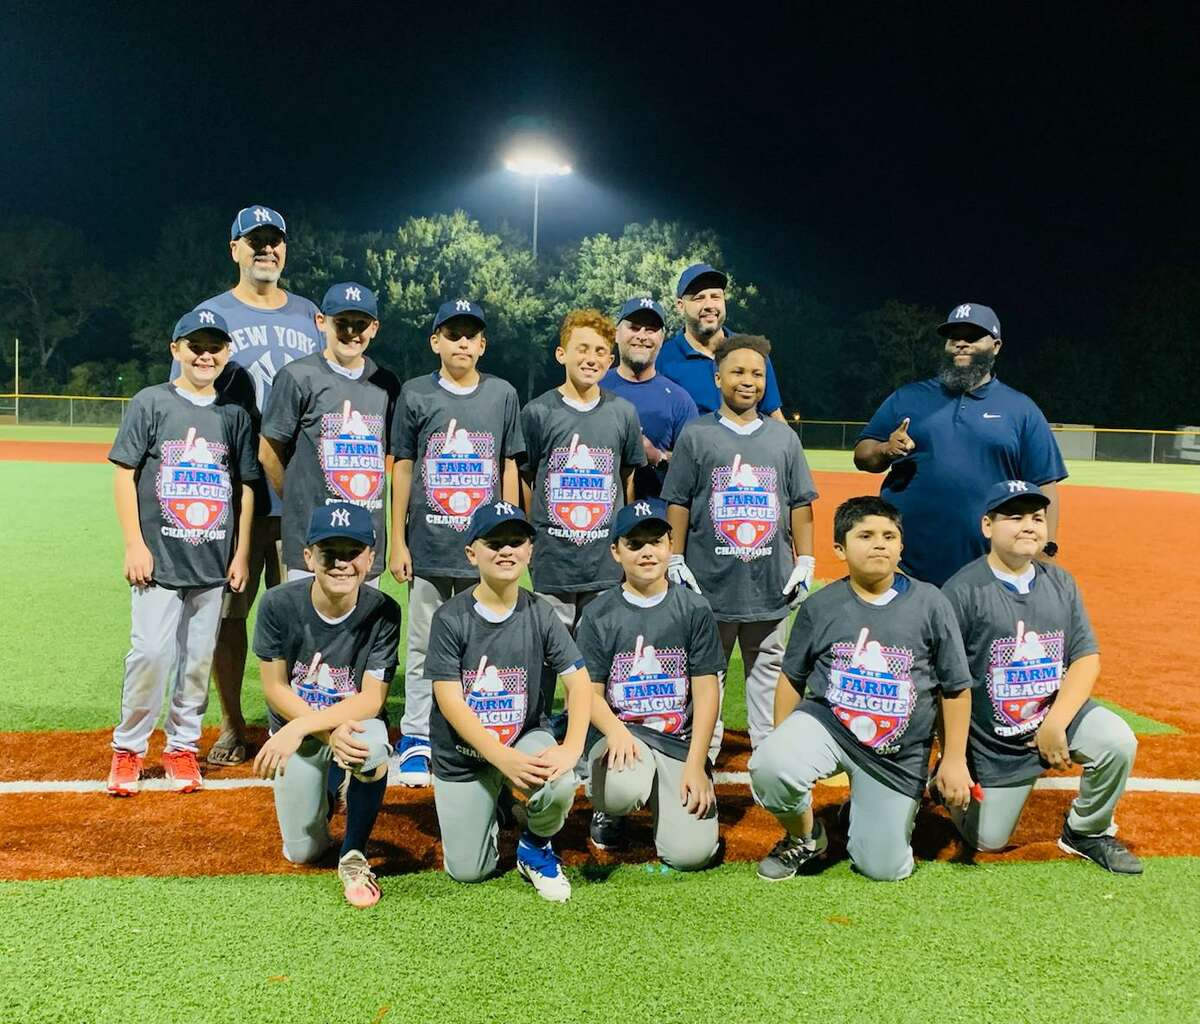 The 11U Yankees of the Farm League finished with twice as many wins as the year before and went 2-1 in the playoffs, ultimately capturing the 2020 Fall Silver Bracket Championship amid COVID-19.